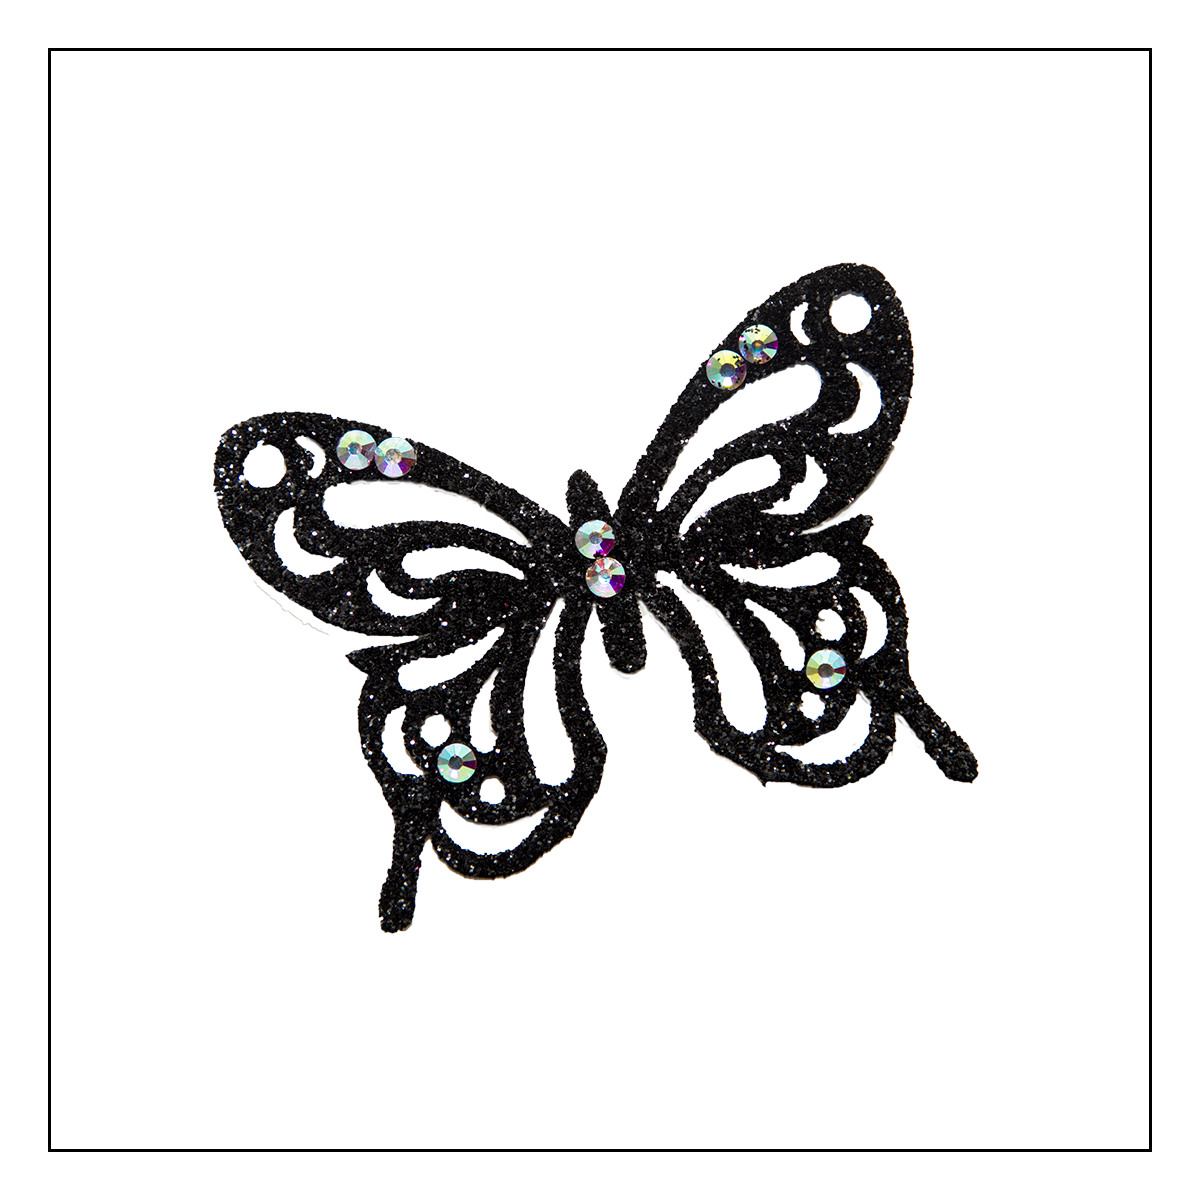 Skin Jewerly by Agustin Fernandez Butterfly Black 1 - 1 piece